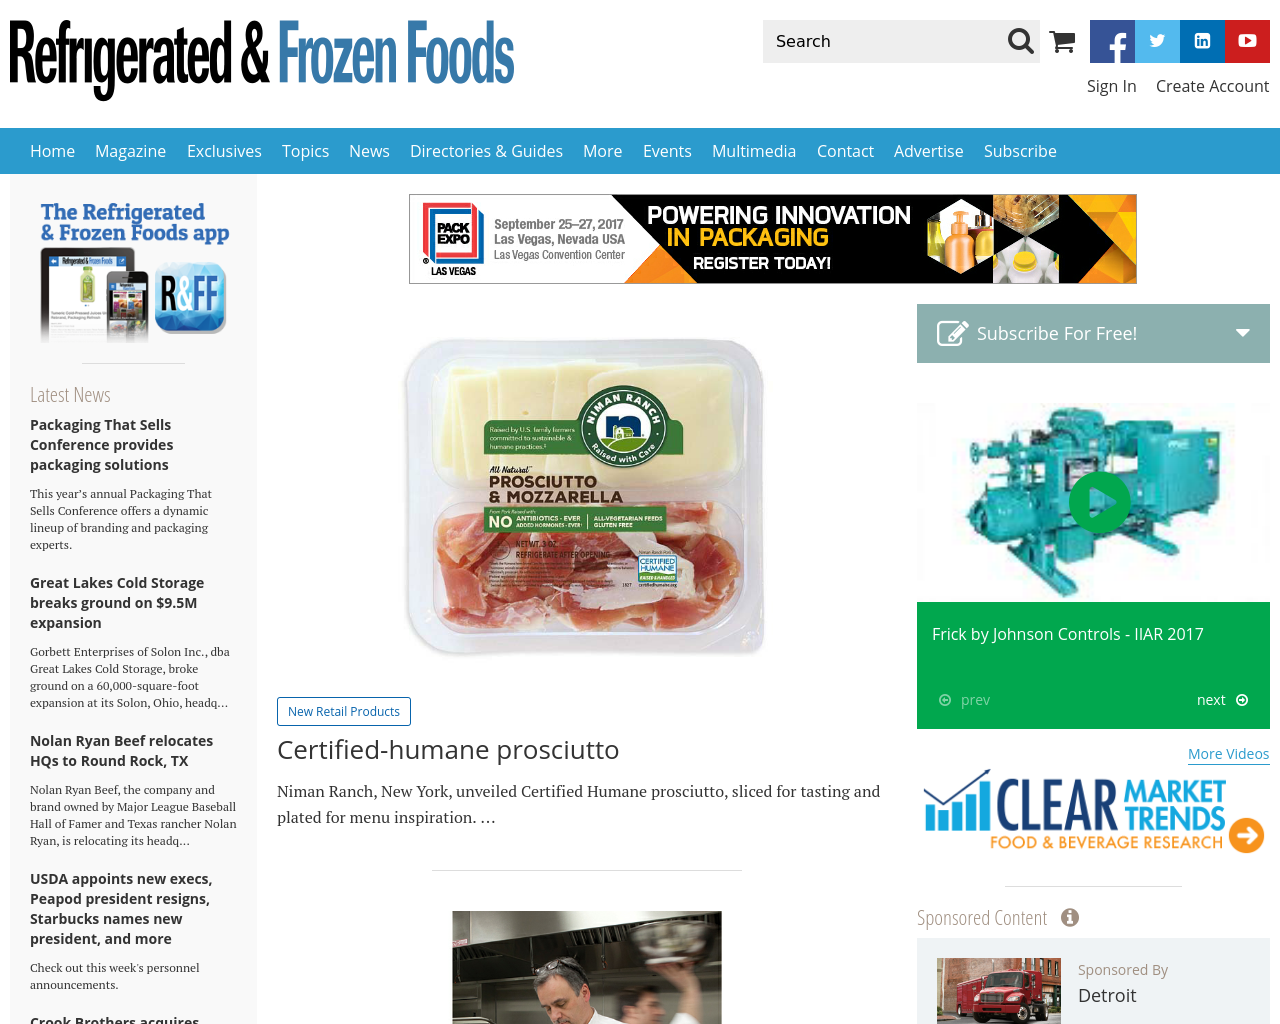 Refrigerated-&-Frozen-Foods-Advertising-Reviews-Pricing